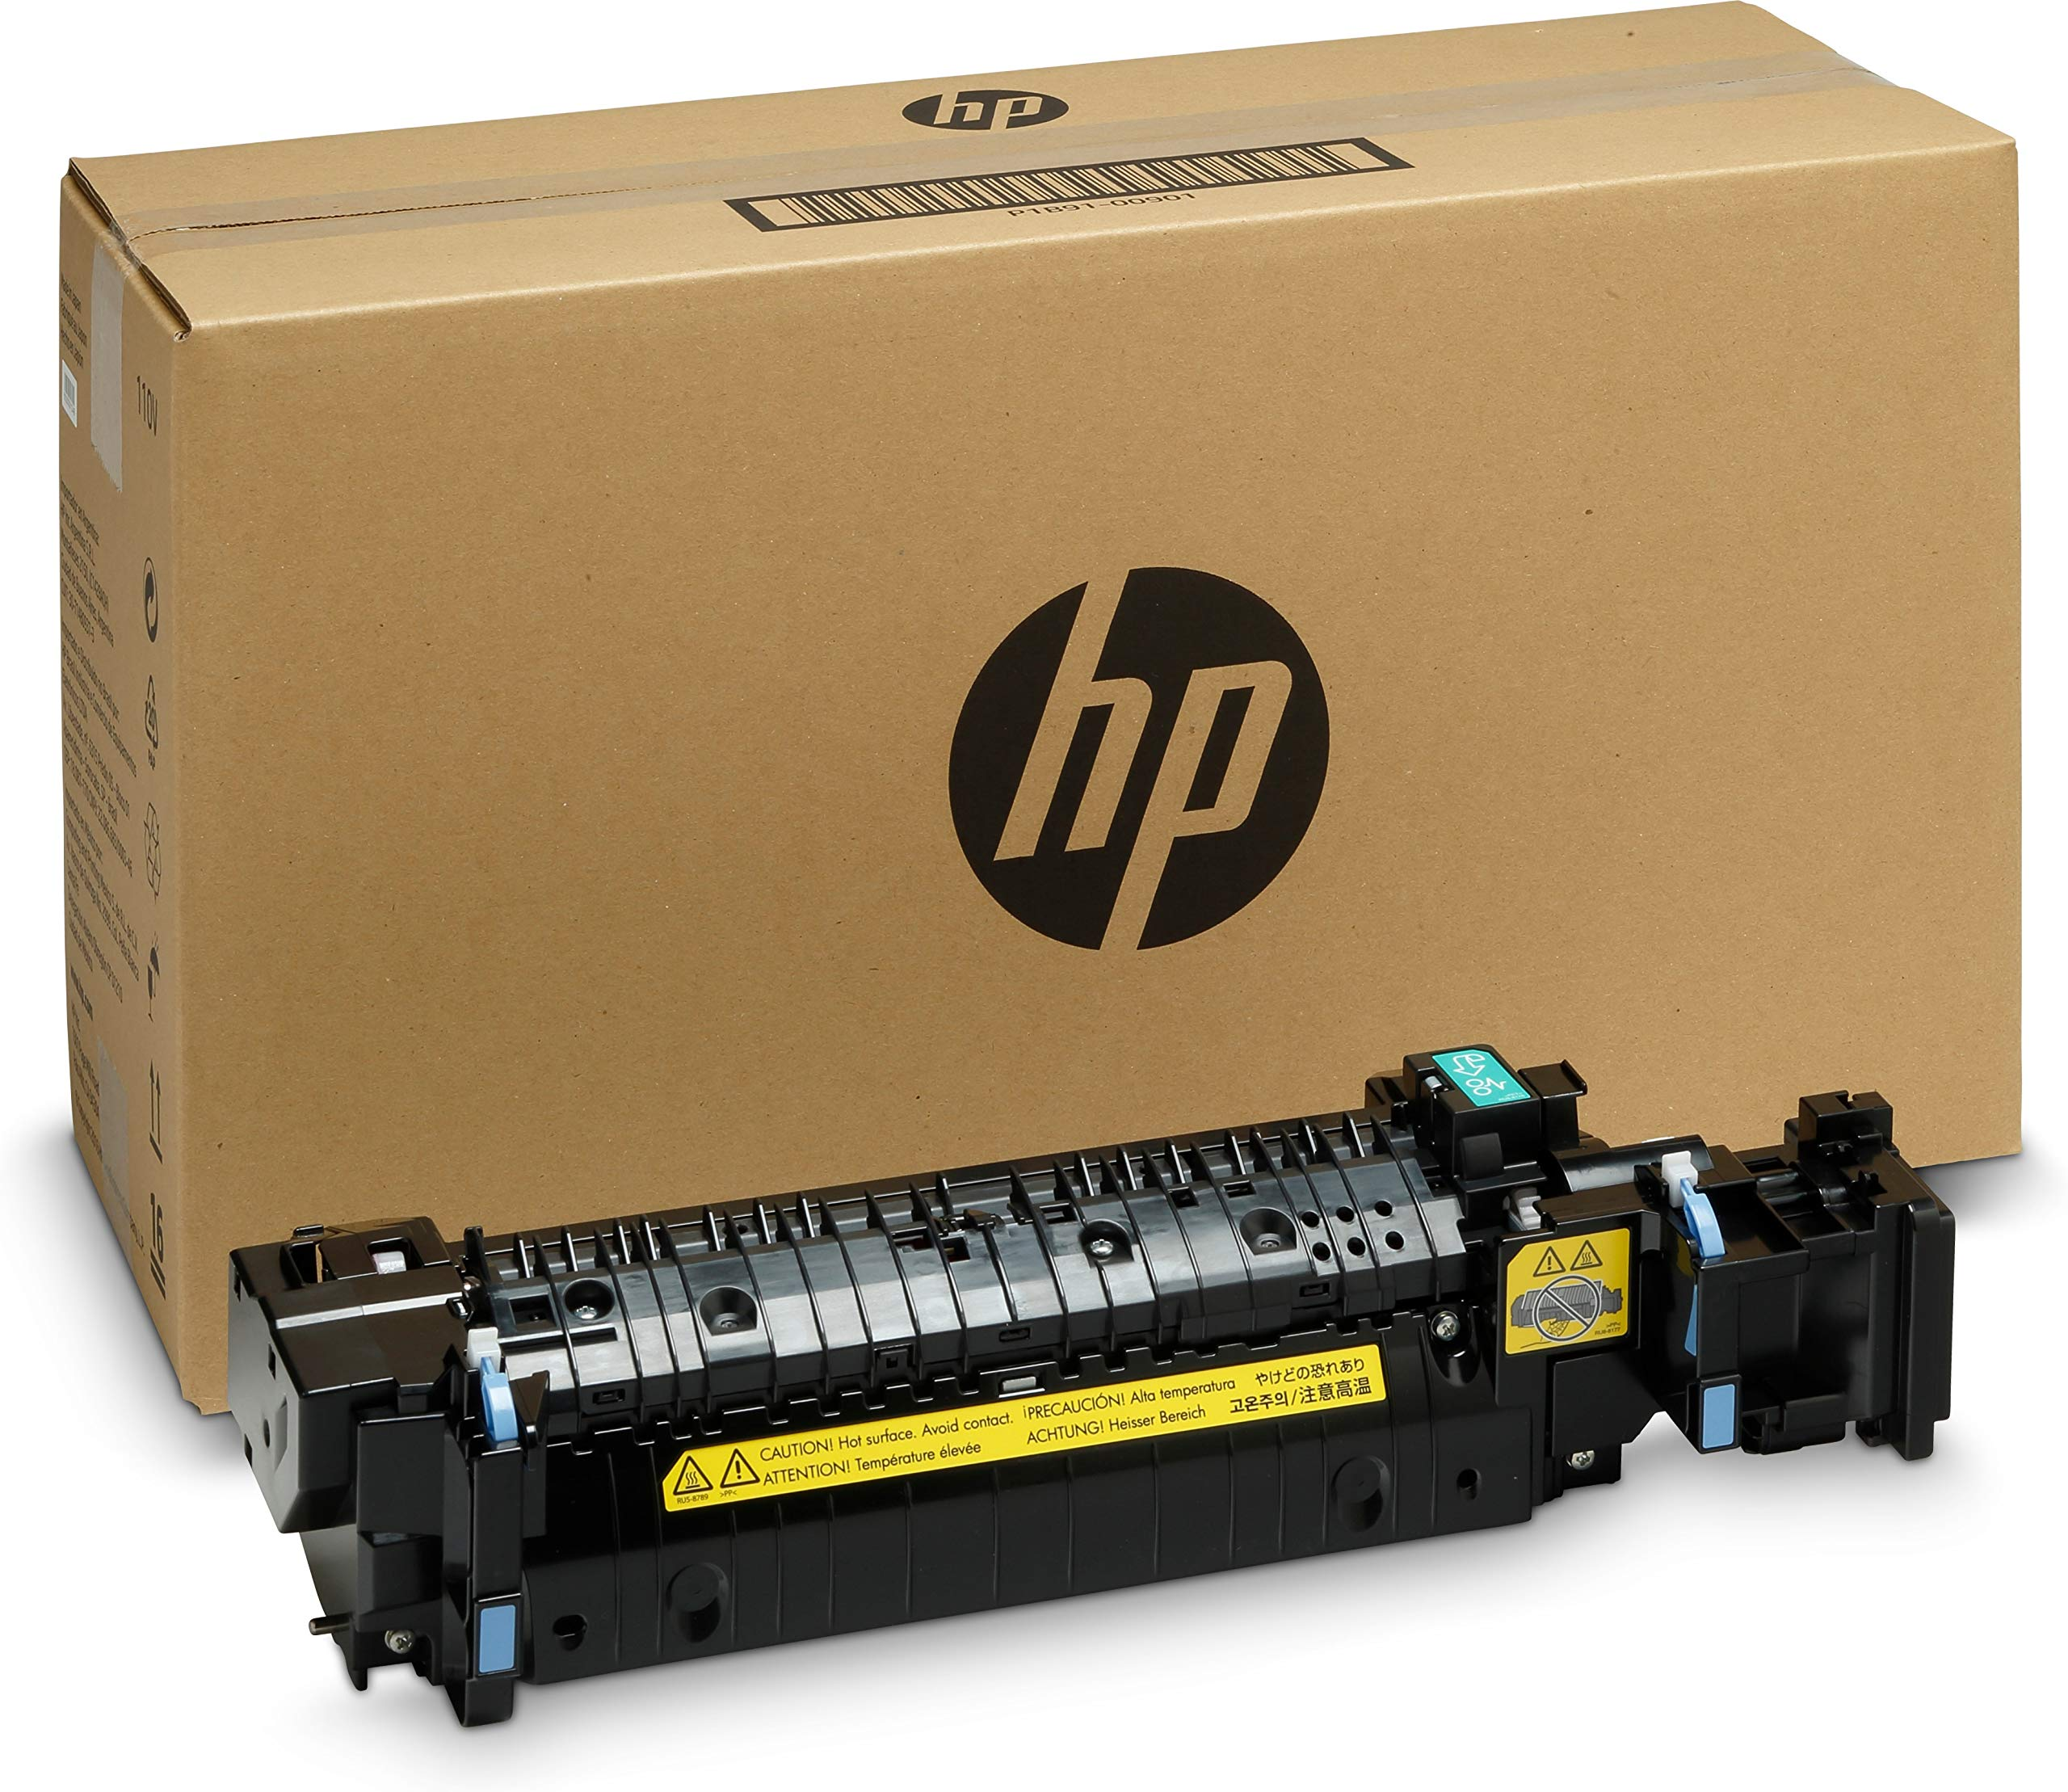 HP P1B91A Original Maintenance Kit for M652, M653 Printers by HP (Image #3)